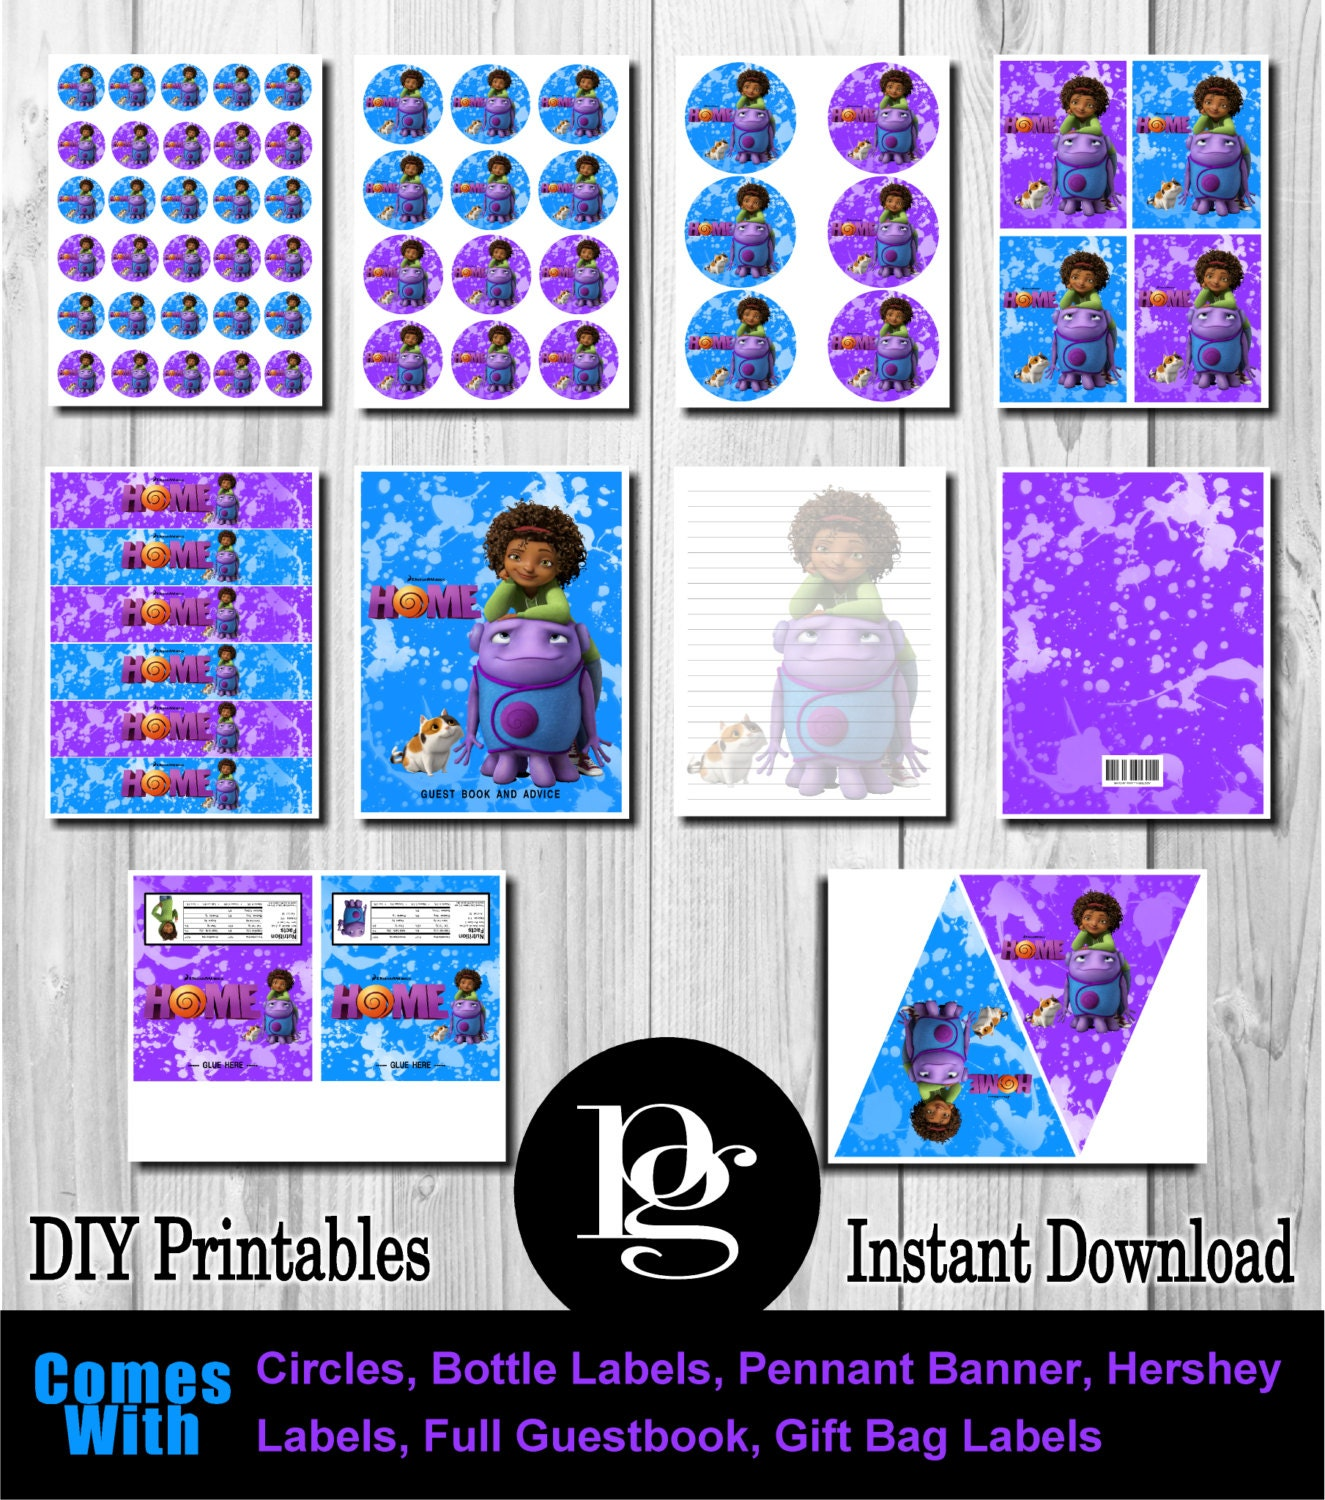 Dreamworks Home Dreamworks Home Party by PlatinumGraphics